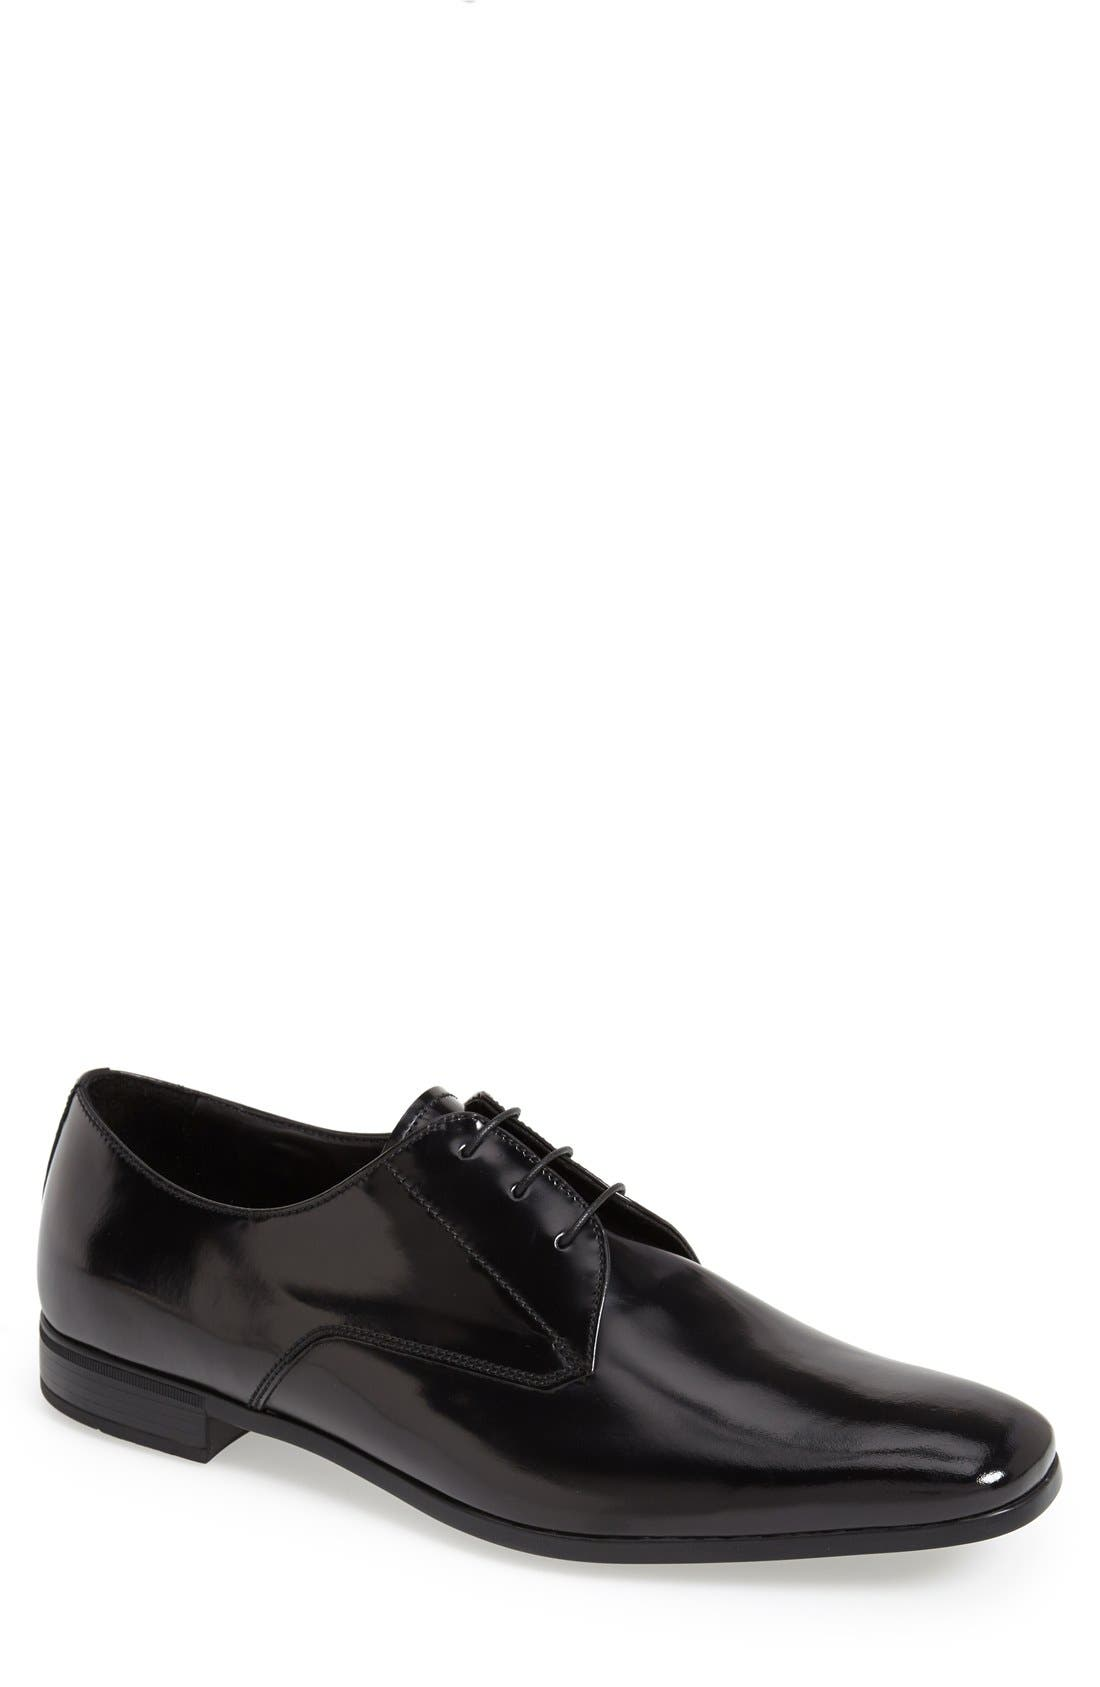 Main Image - Prada Spazzalato Plain Toe Derby (Men)